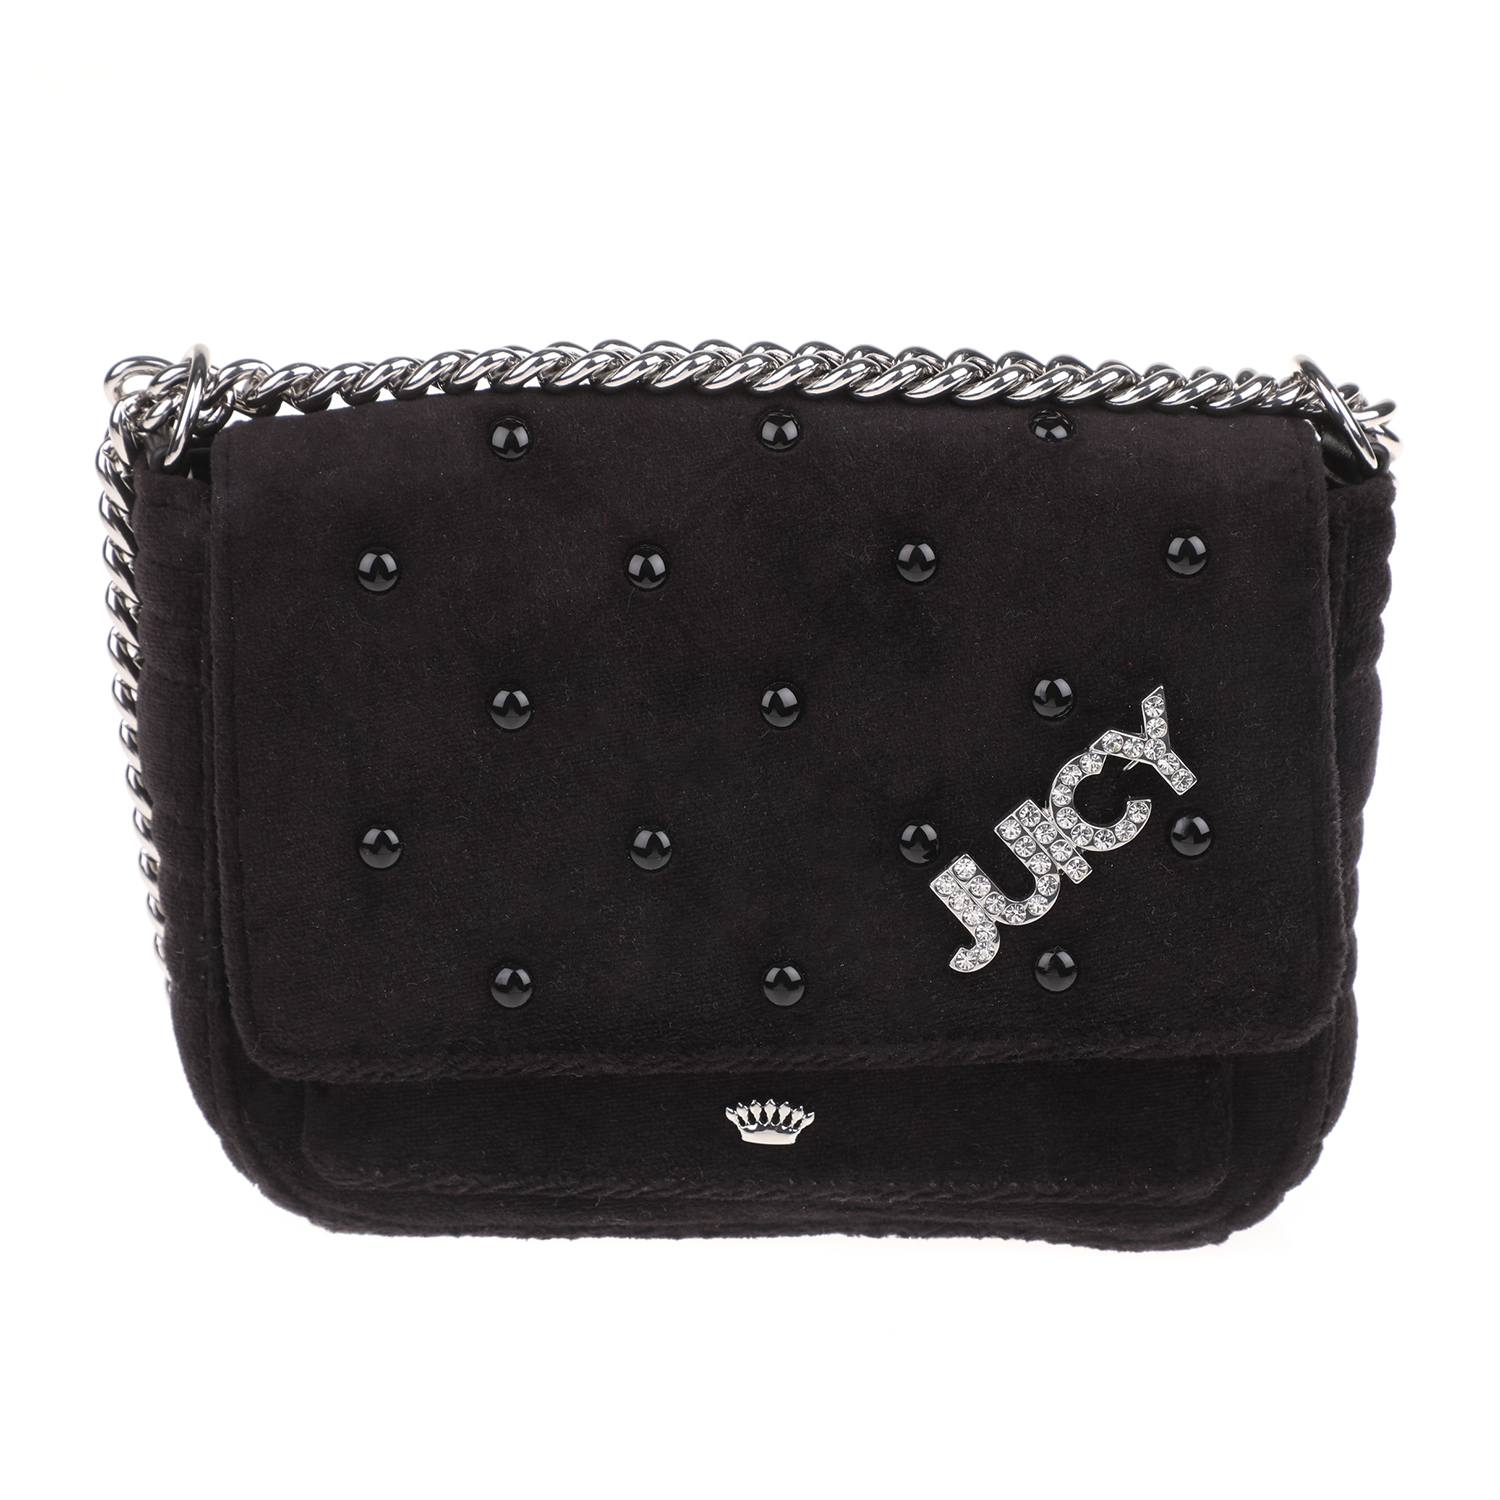 JUICY COUTURE - Γυναικείο τσαντάκι χιαστί BOBBLE VELOUR LIL JUICY COUTURE μαύρο γυναικεία αξεσουάρ τσάντες σακίδια χιαστή   cross body